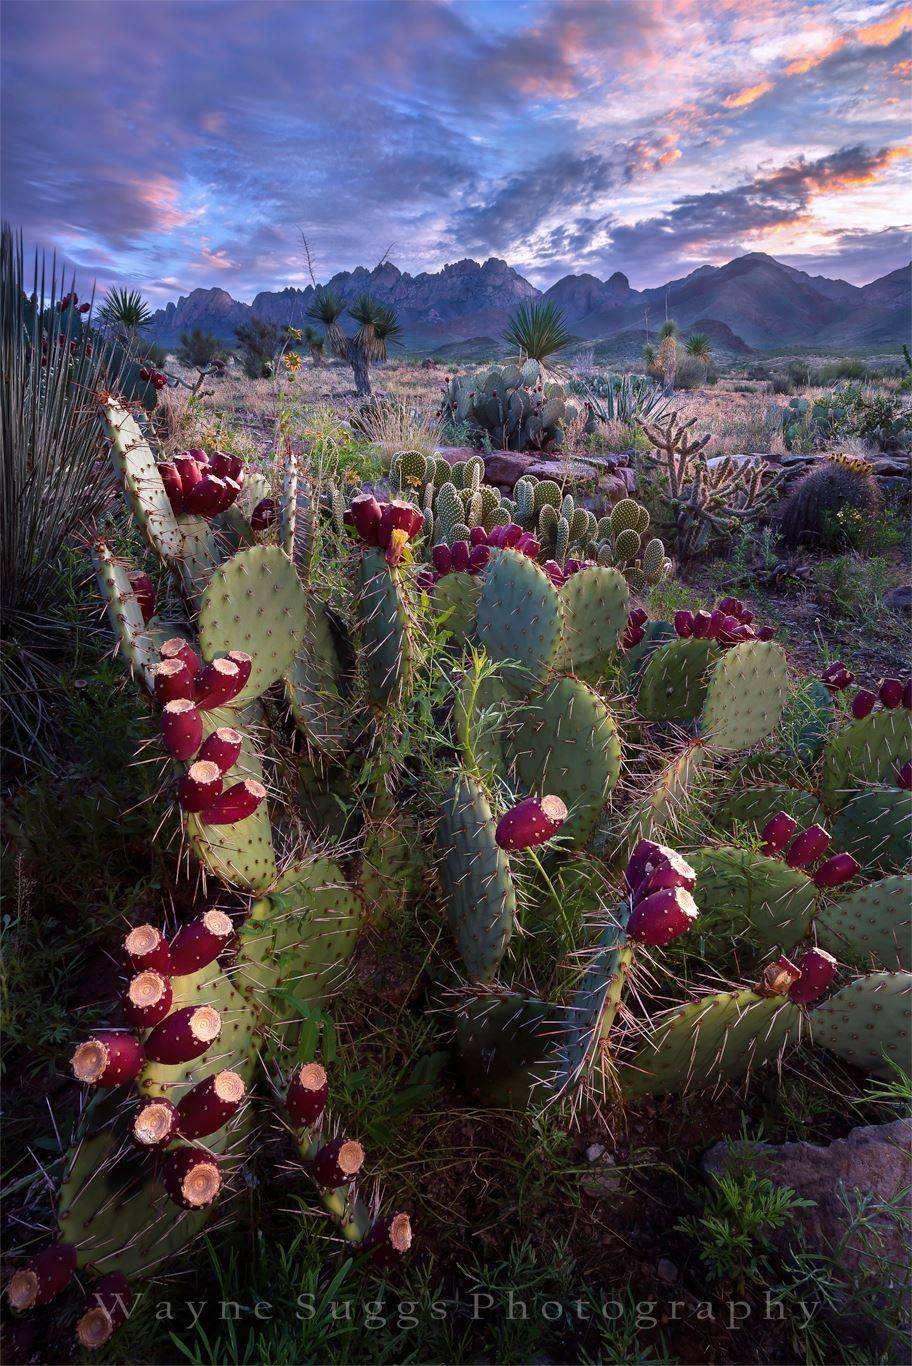 "By Wayne Suggs Photography Prickly Pear Sunrise 2016   Prickly pear lemonade anyone?   To see this and other images, or to purchase, go to:  http://waynesuggsphotography.com/ To see my book, ""The Light Never Lies"" ,  go to: http://www.blurb.com/b/6162507-the-light-never-lies"